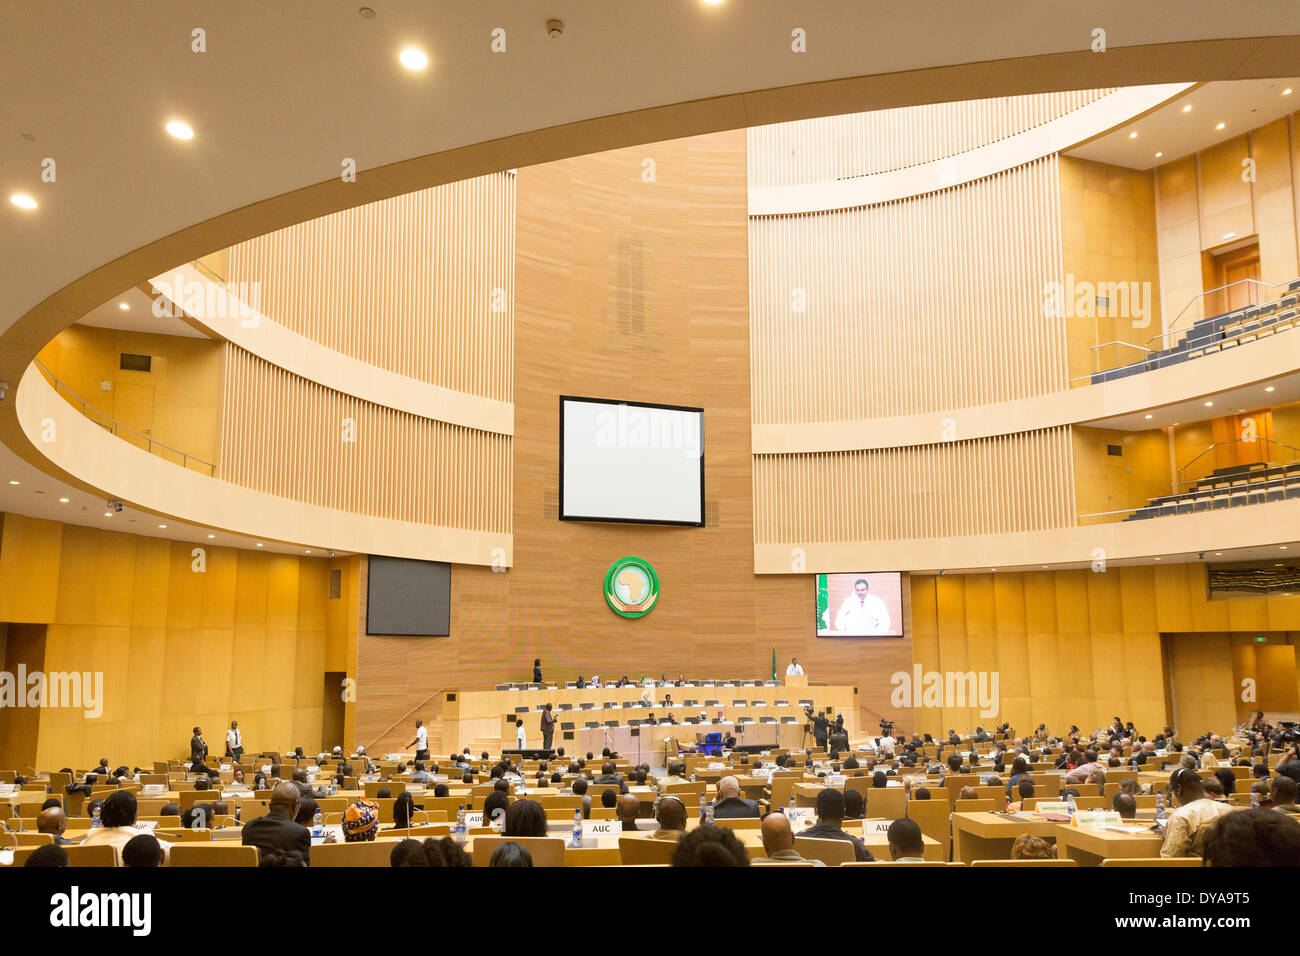 Addis Ababa, Ethiopia. 11th April 2014.  Participants of the of the 20th Anniversary Commemoration of the Rwanda Genocide gather at the AU Nelson Mandela Hall, on 11 April, 2014, in Addis Ababa, Ethiopia Credit:  Dereje Belachew/Alamy Live News - Stock Image